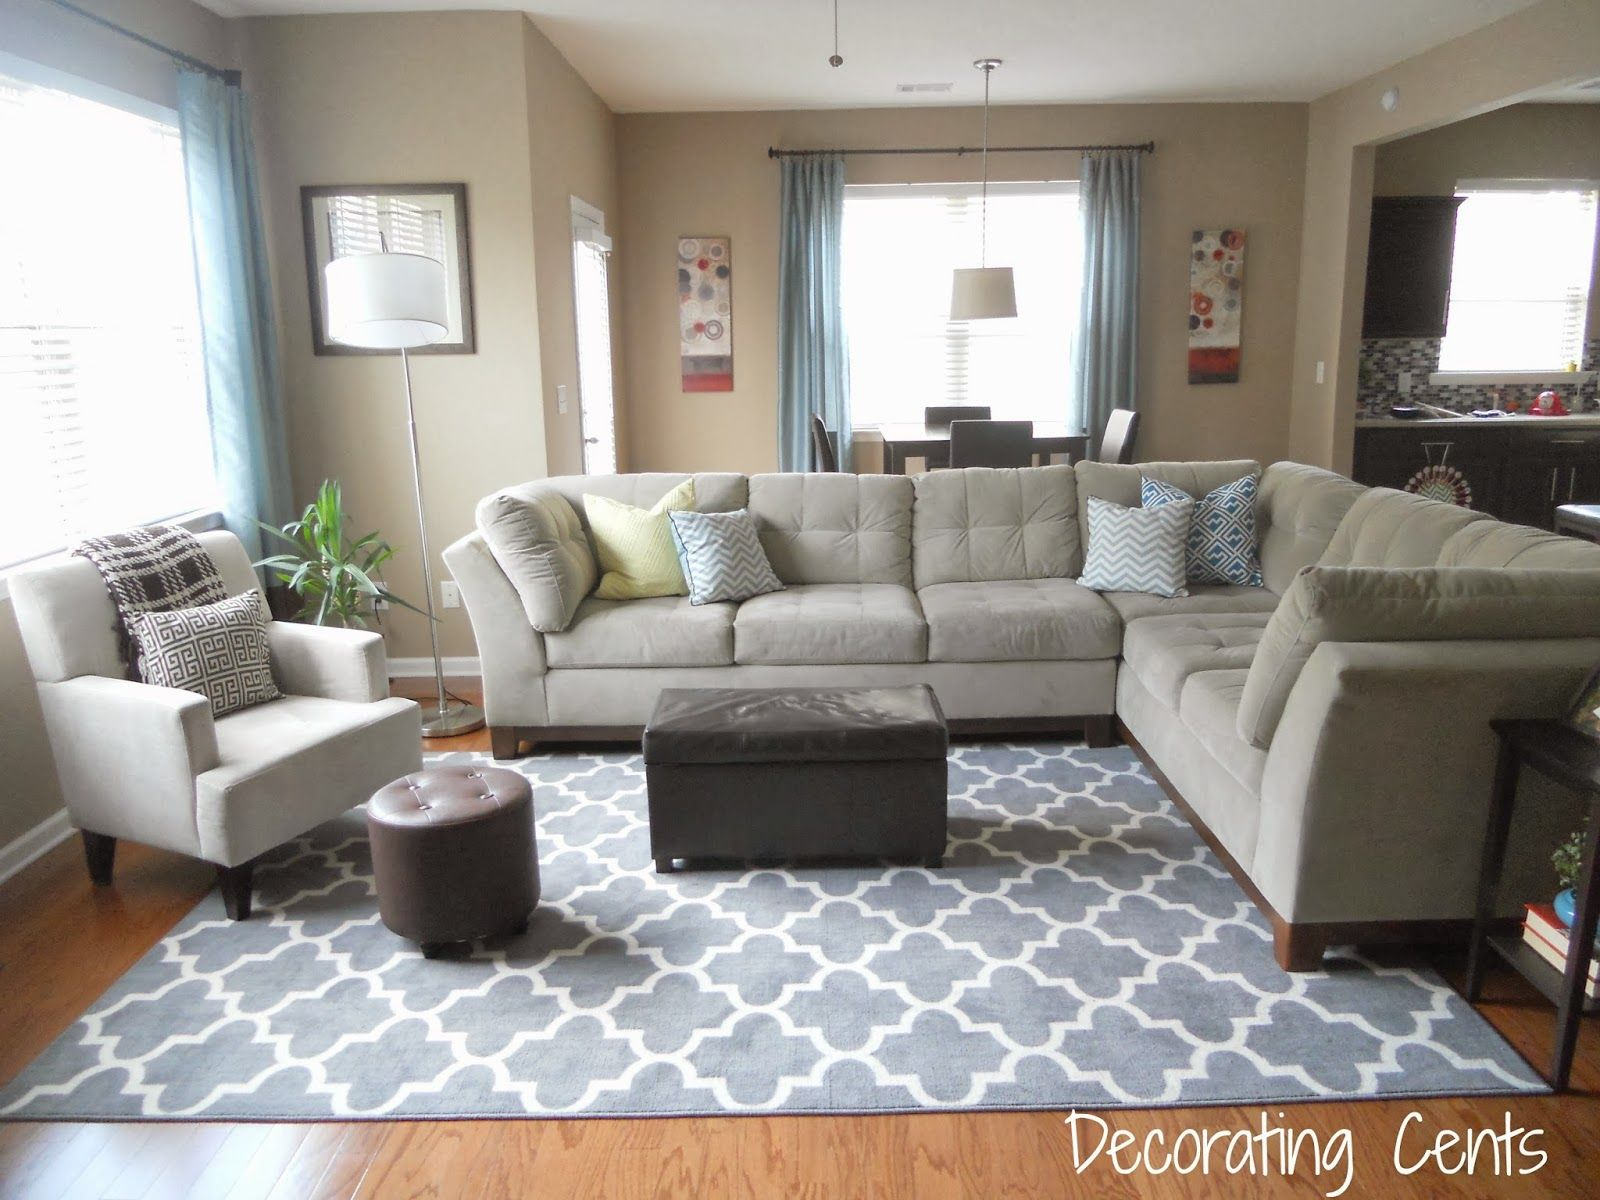 Decorating Cents New Family Room Rug Rugs In Living